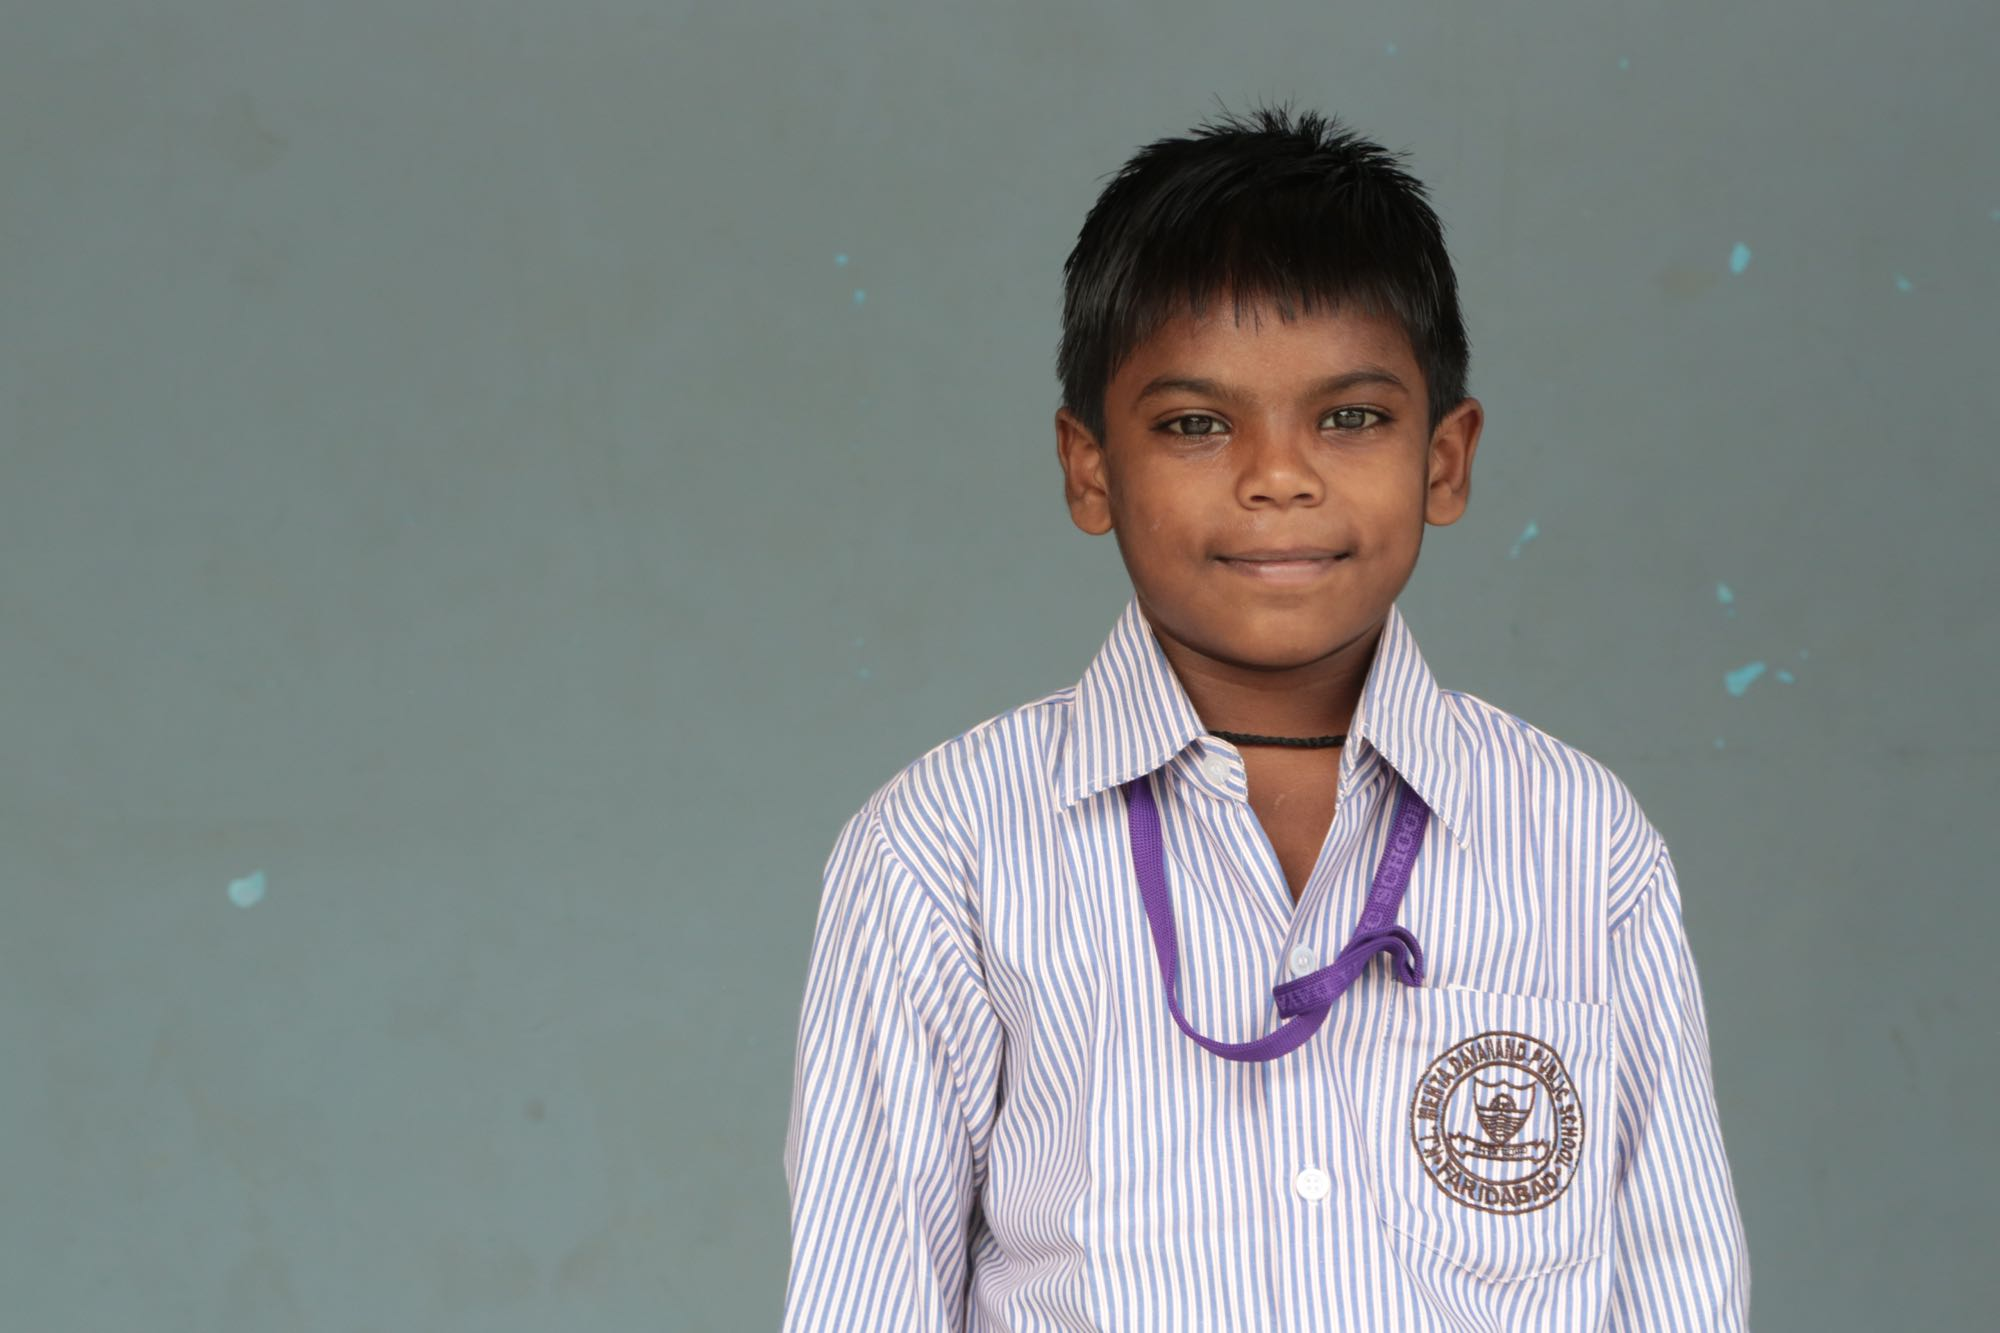 Naitik - (S2S-053)Currently in need of sponsorship. Click here to sponsor Naitik or another scholar for just $30/month!Sponsored previously by the St. Joseph's School, Australia